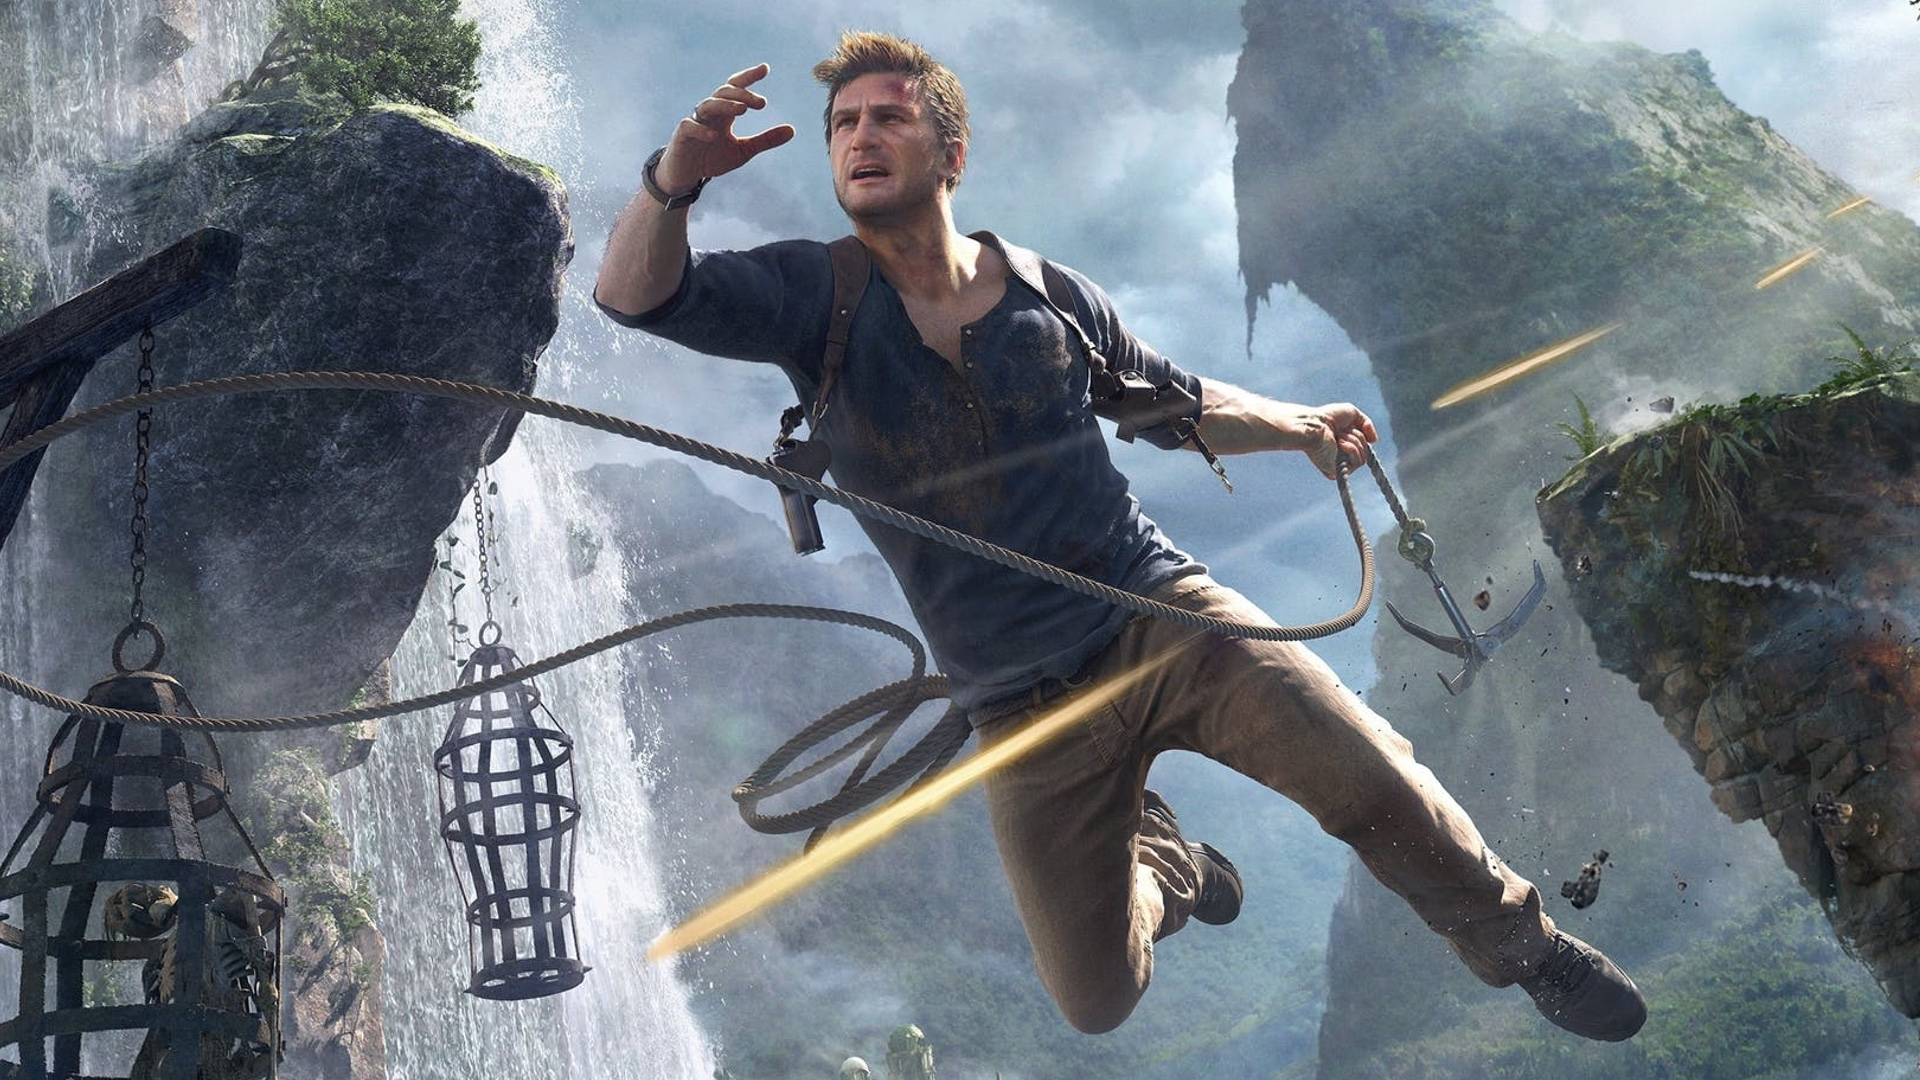 director-shawn-levy-offers-update-on-his-uncharted-movie-with-tom-holland-social2.jpg